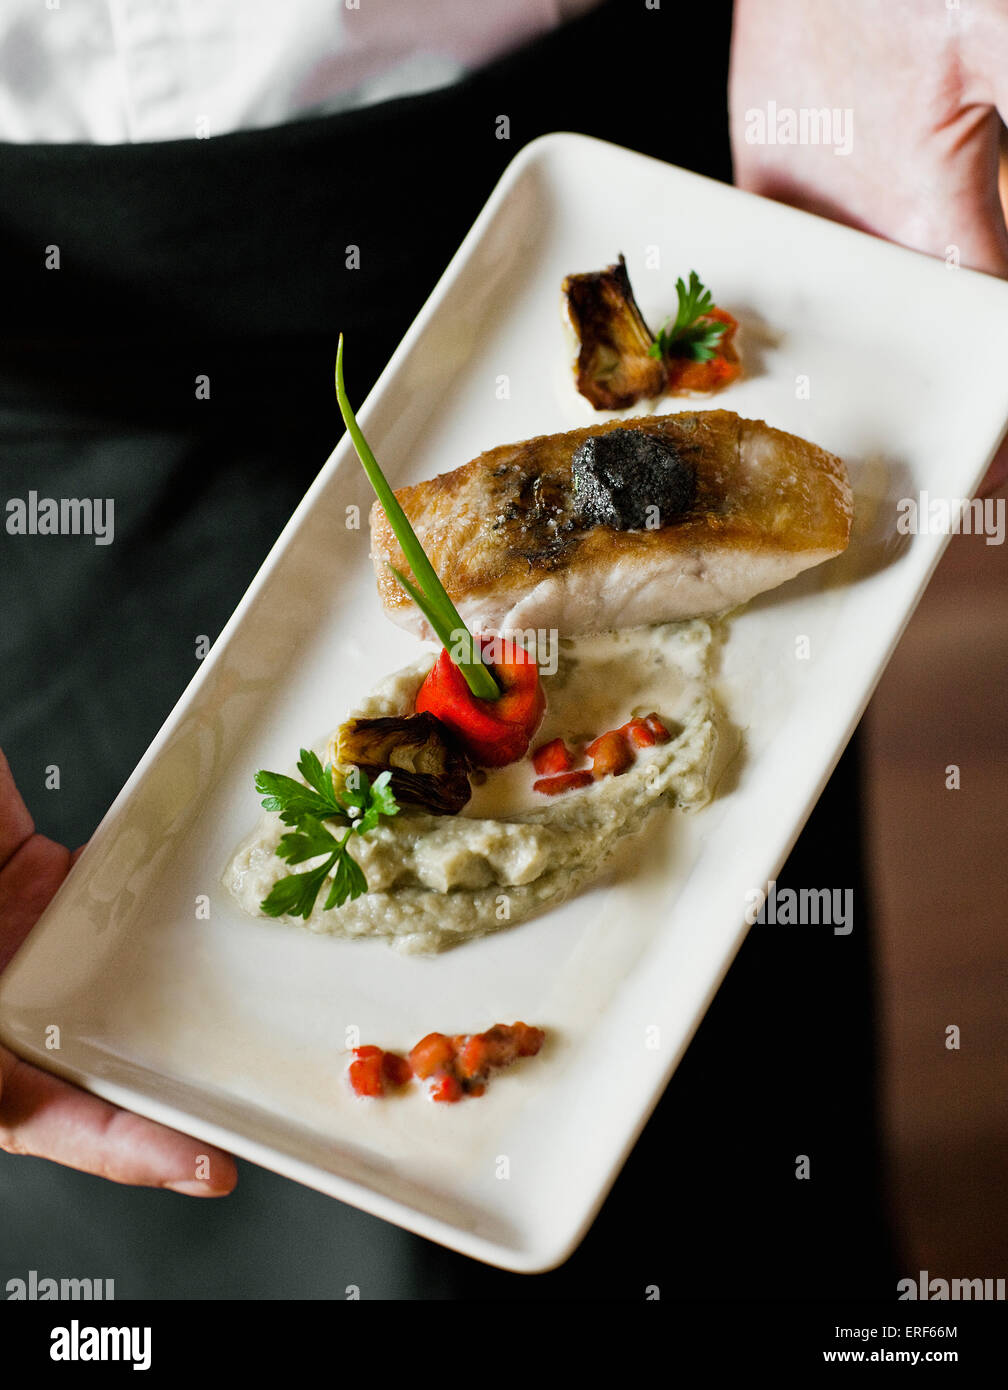 Entree Stock Photos Amp Entree Stock Images Alamy